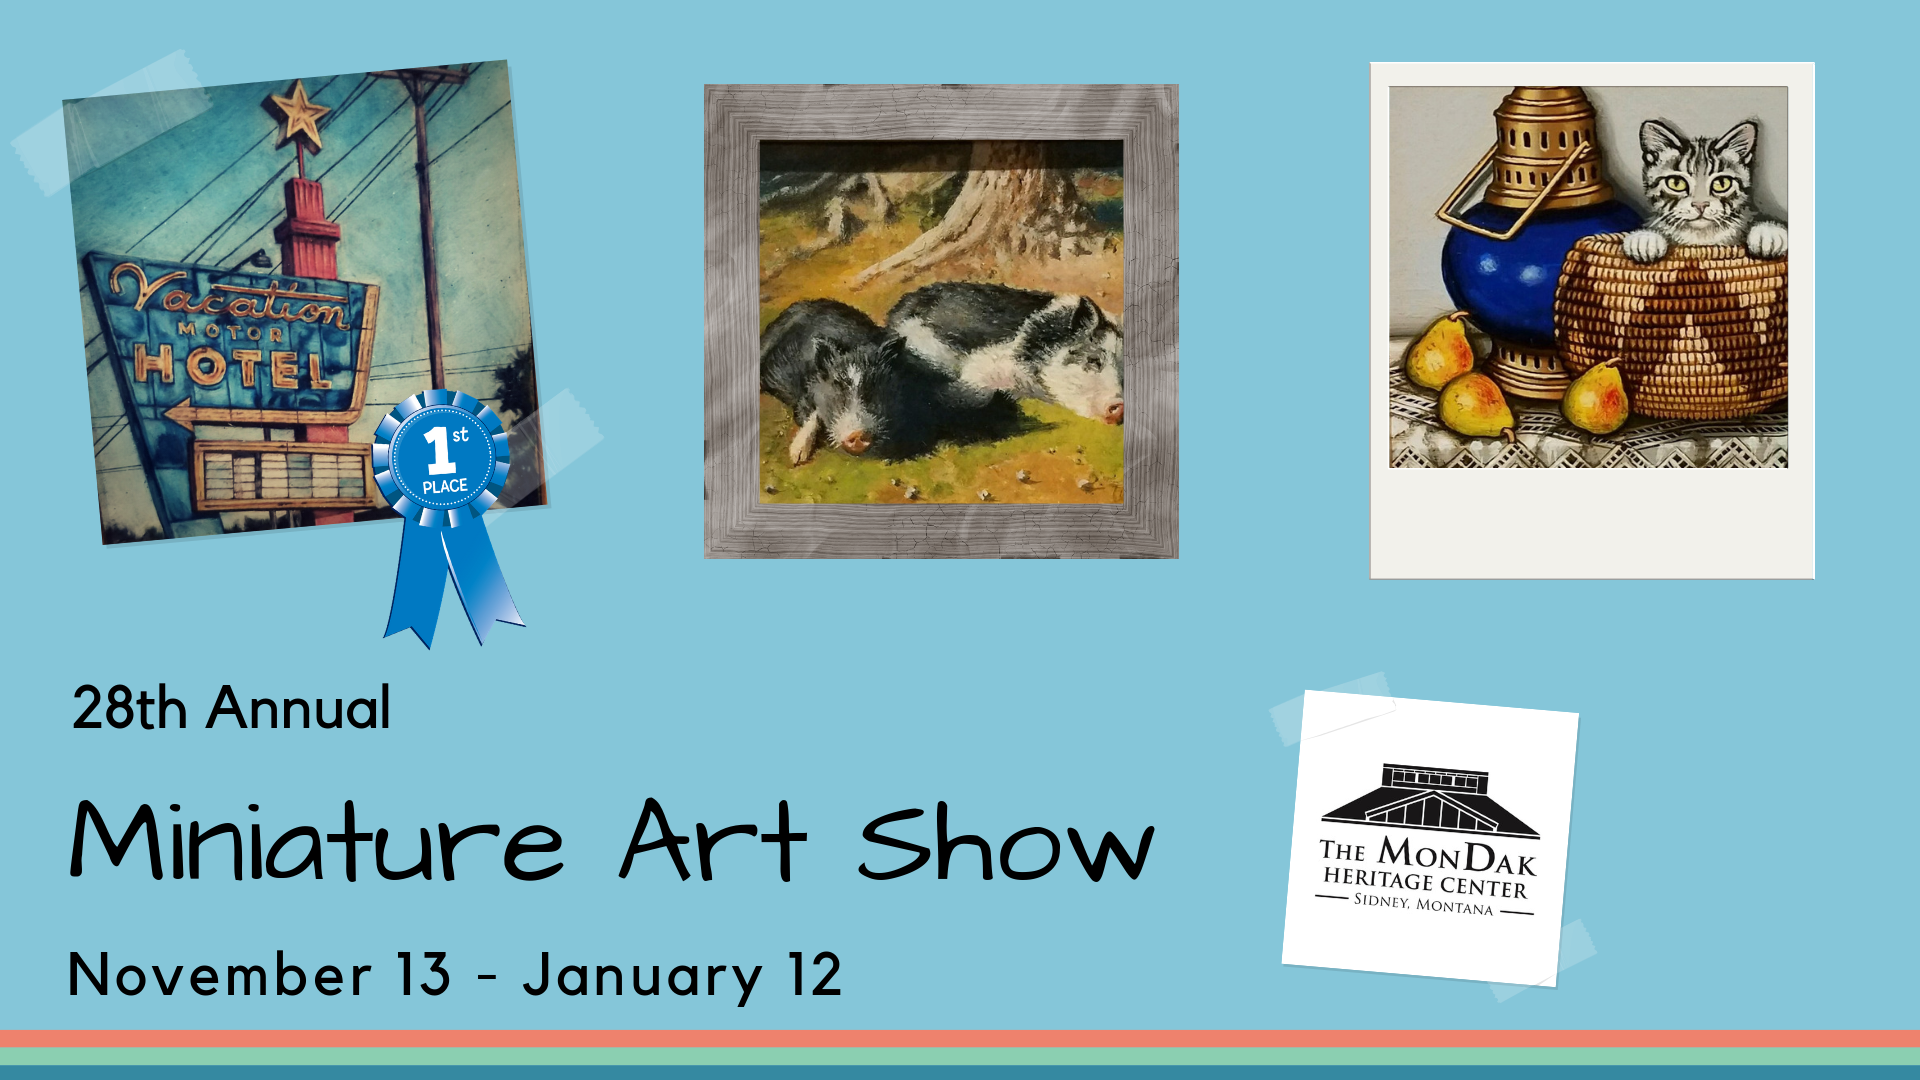 Miniature Art Show